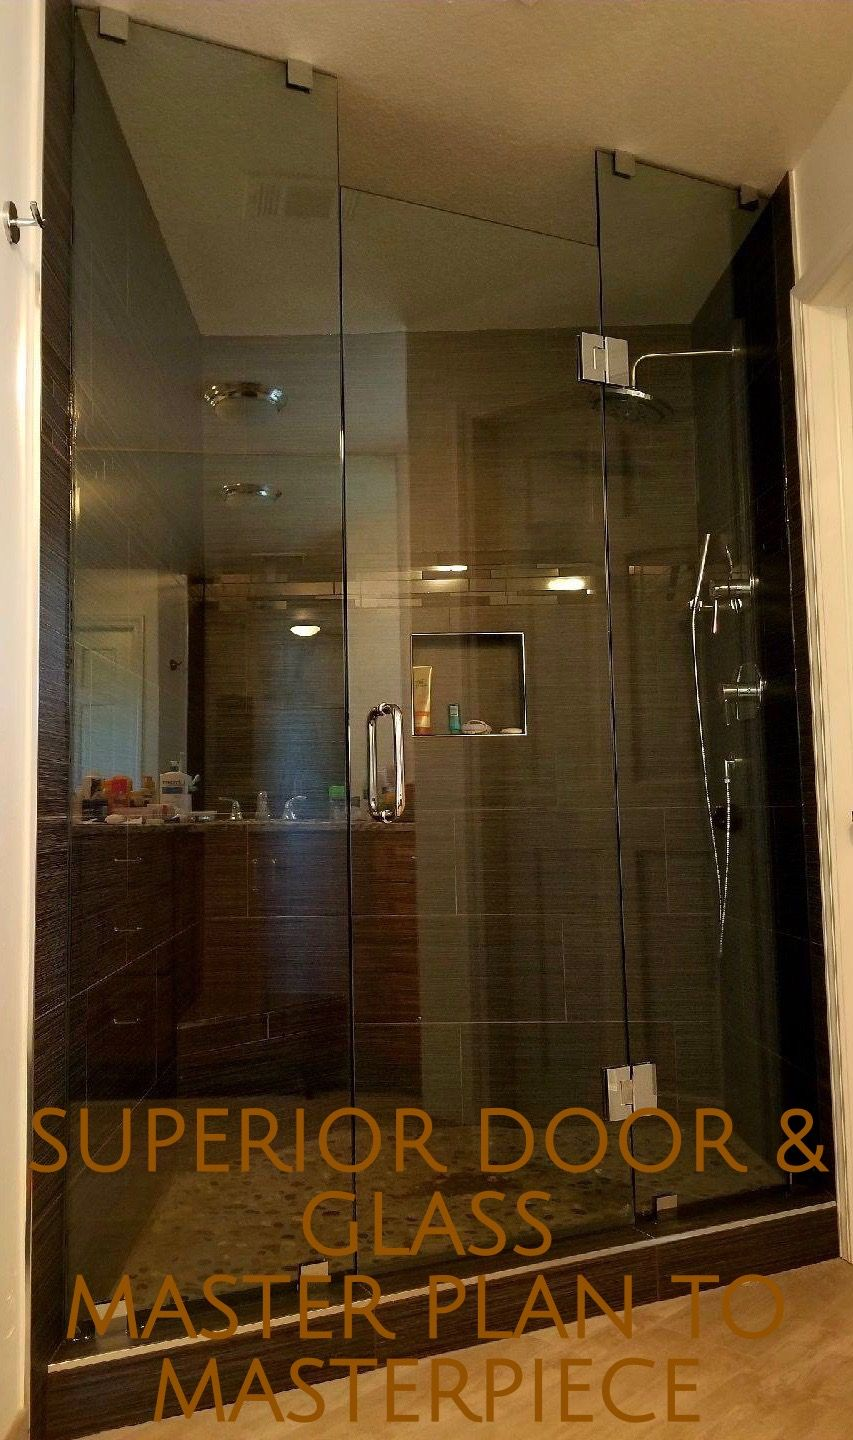 Superior Door Glass Master Plan To Masterpiece Tinted Glass